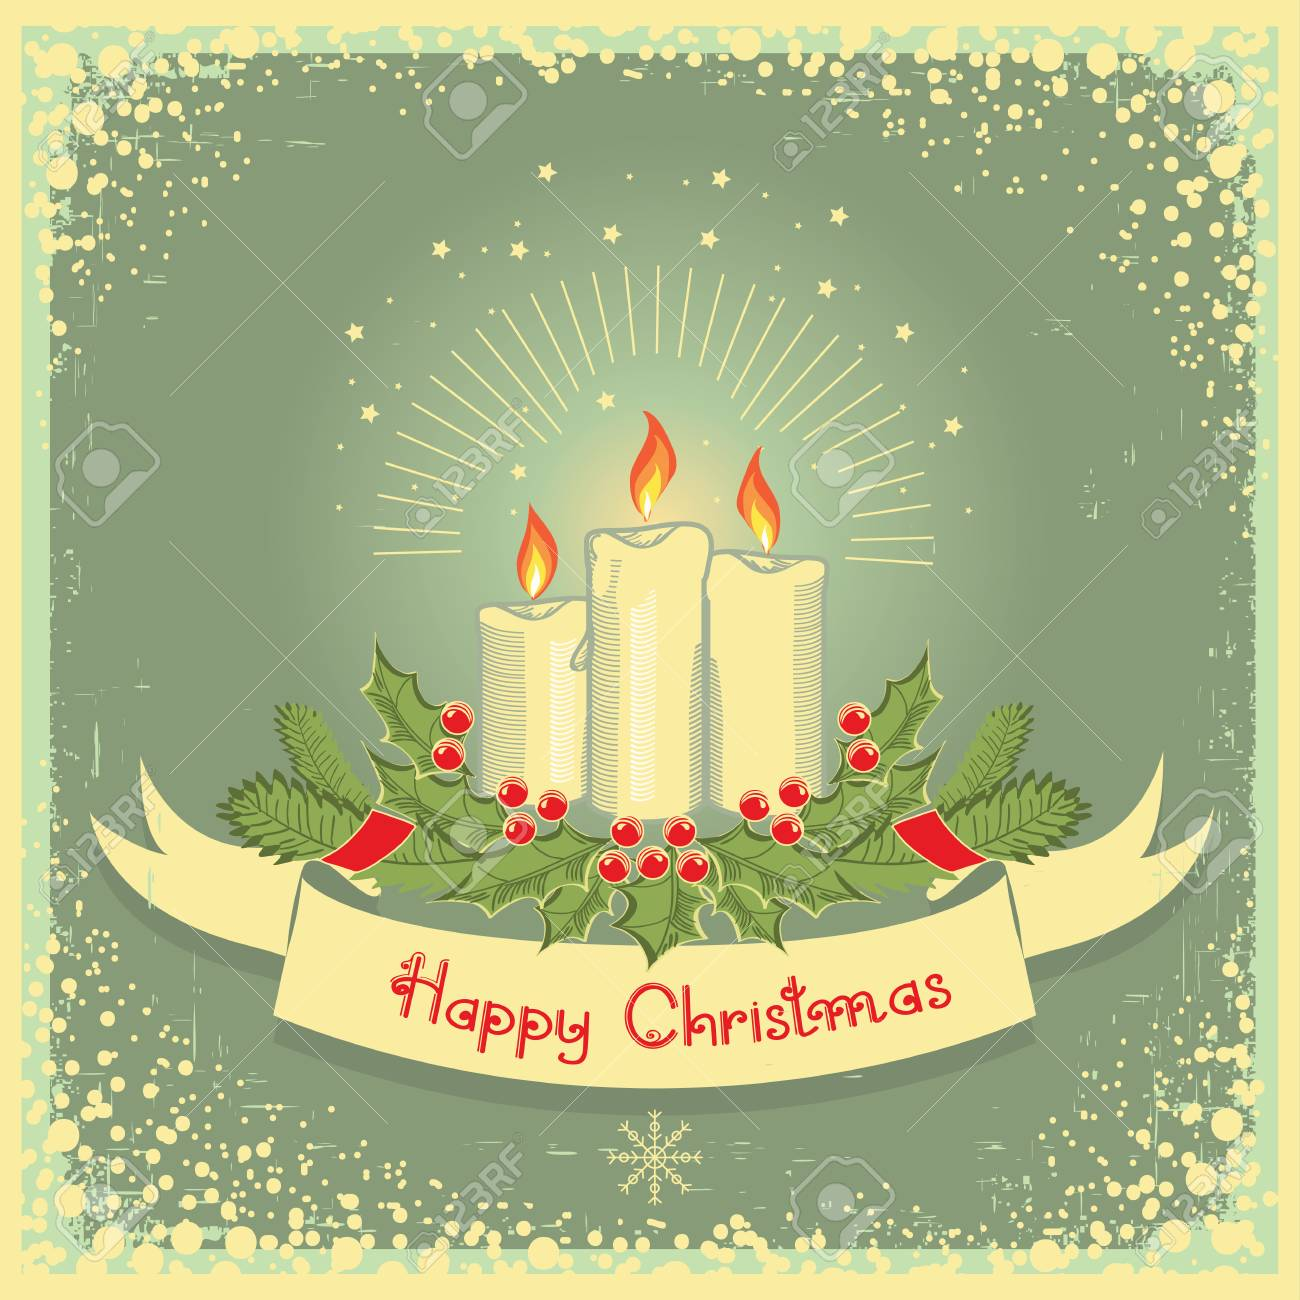 Vintage Christmas Candles.Vector Christmas Candles With Scroll Vector Vintage Illustration